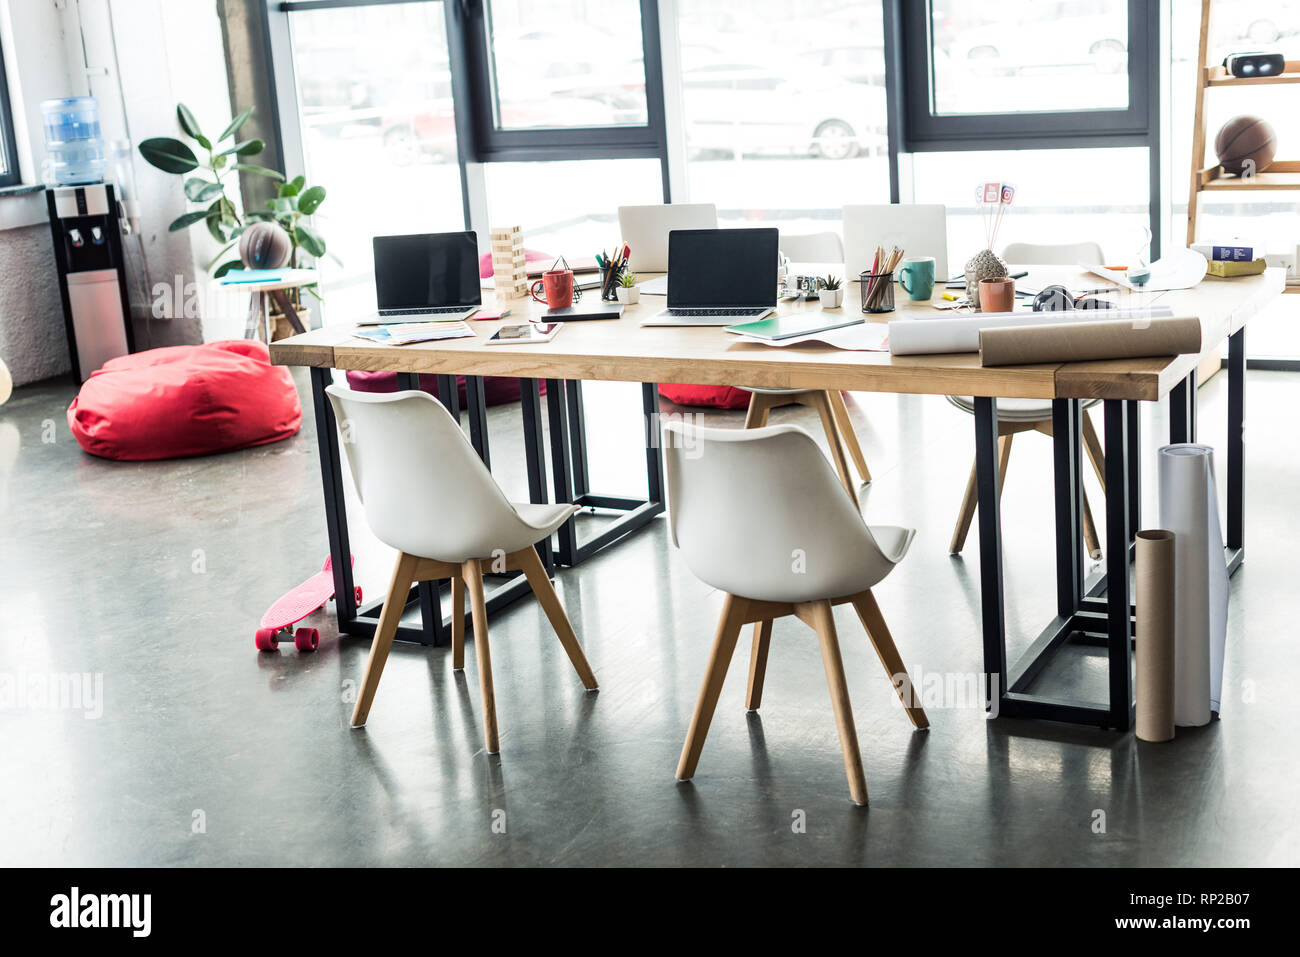 Modern Design Of Spacious Loft Office With Chairs And Computer Desk